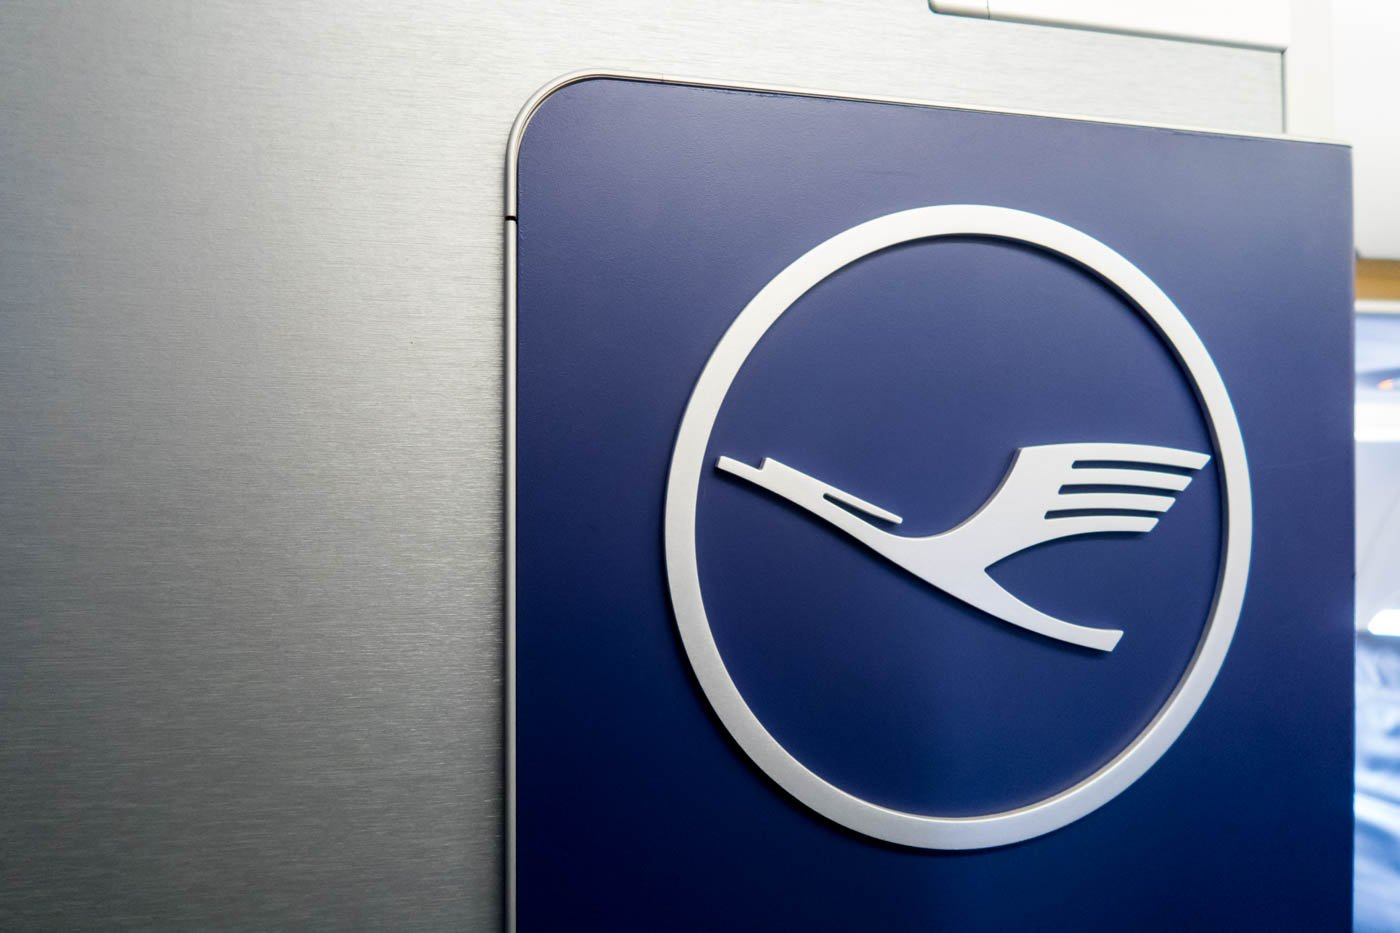 Nice-looking Lufthansa logo on the aircraft's wall.